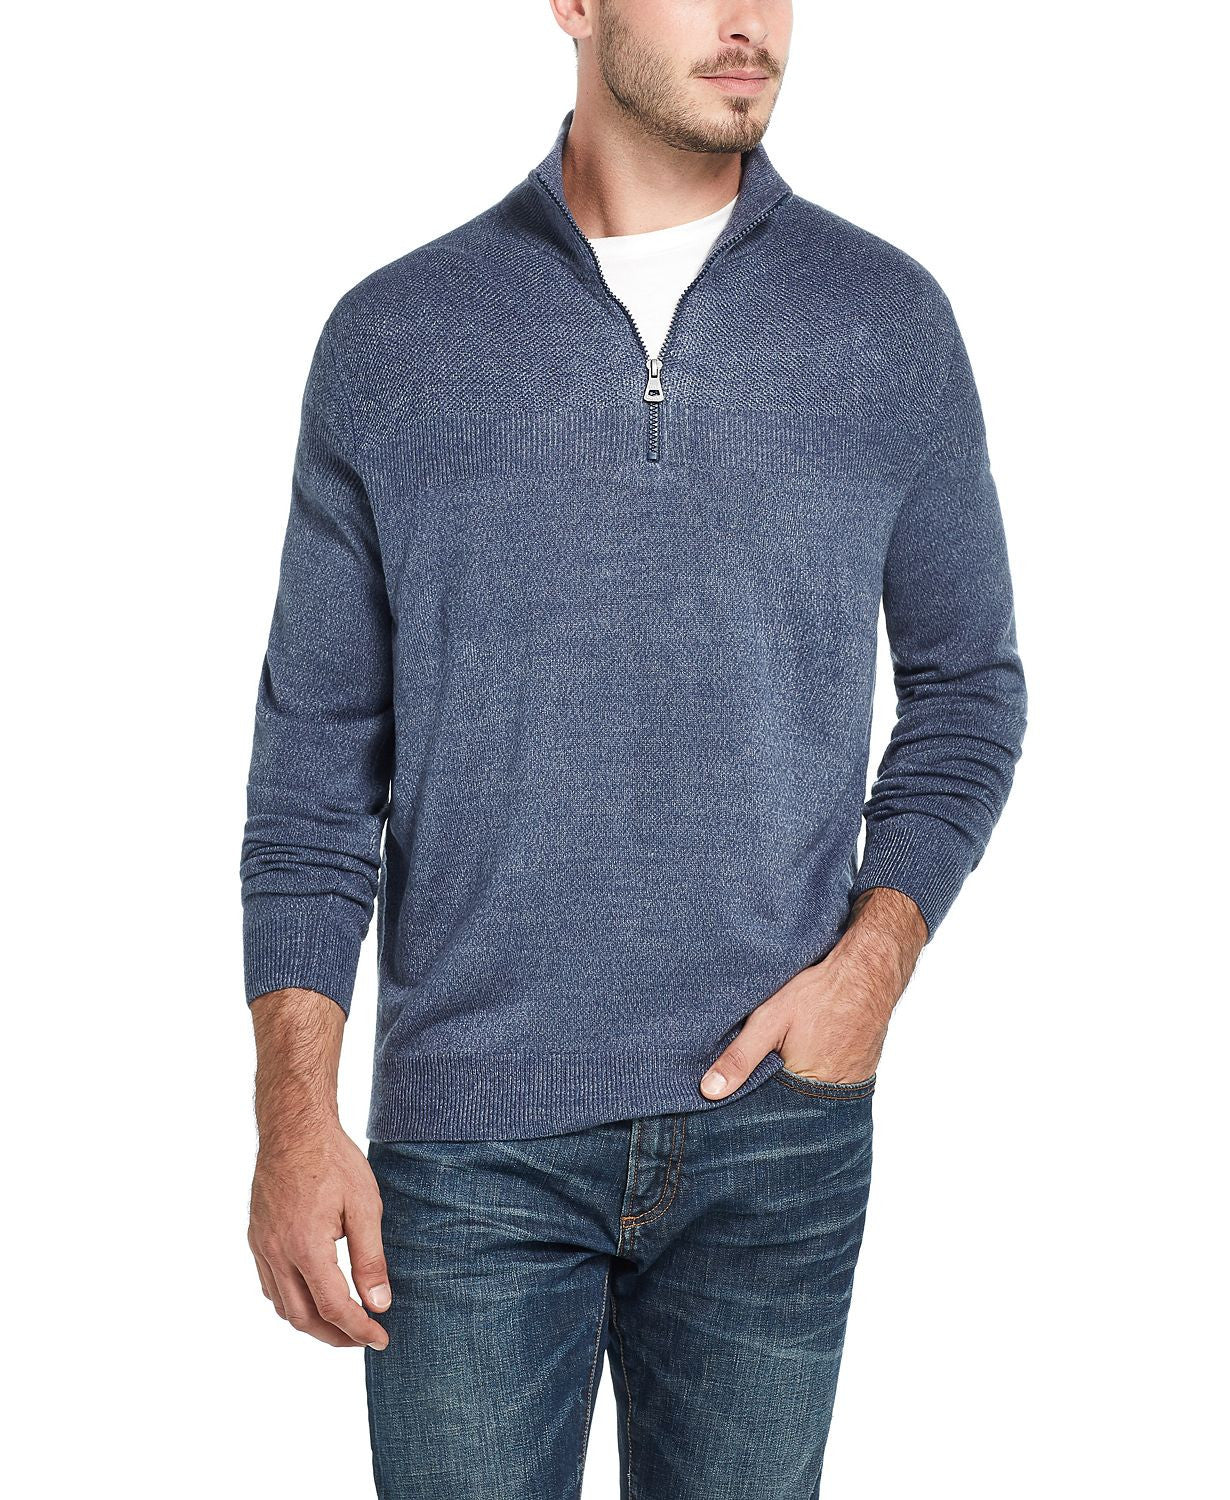 Weatherproof Vintage  Soft Touch Quarter-zip Sweater Med Blue